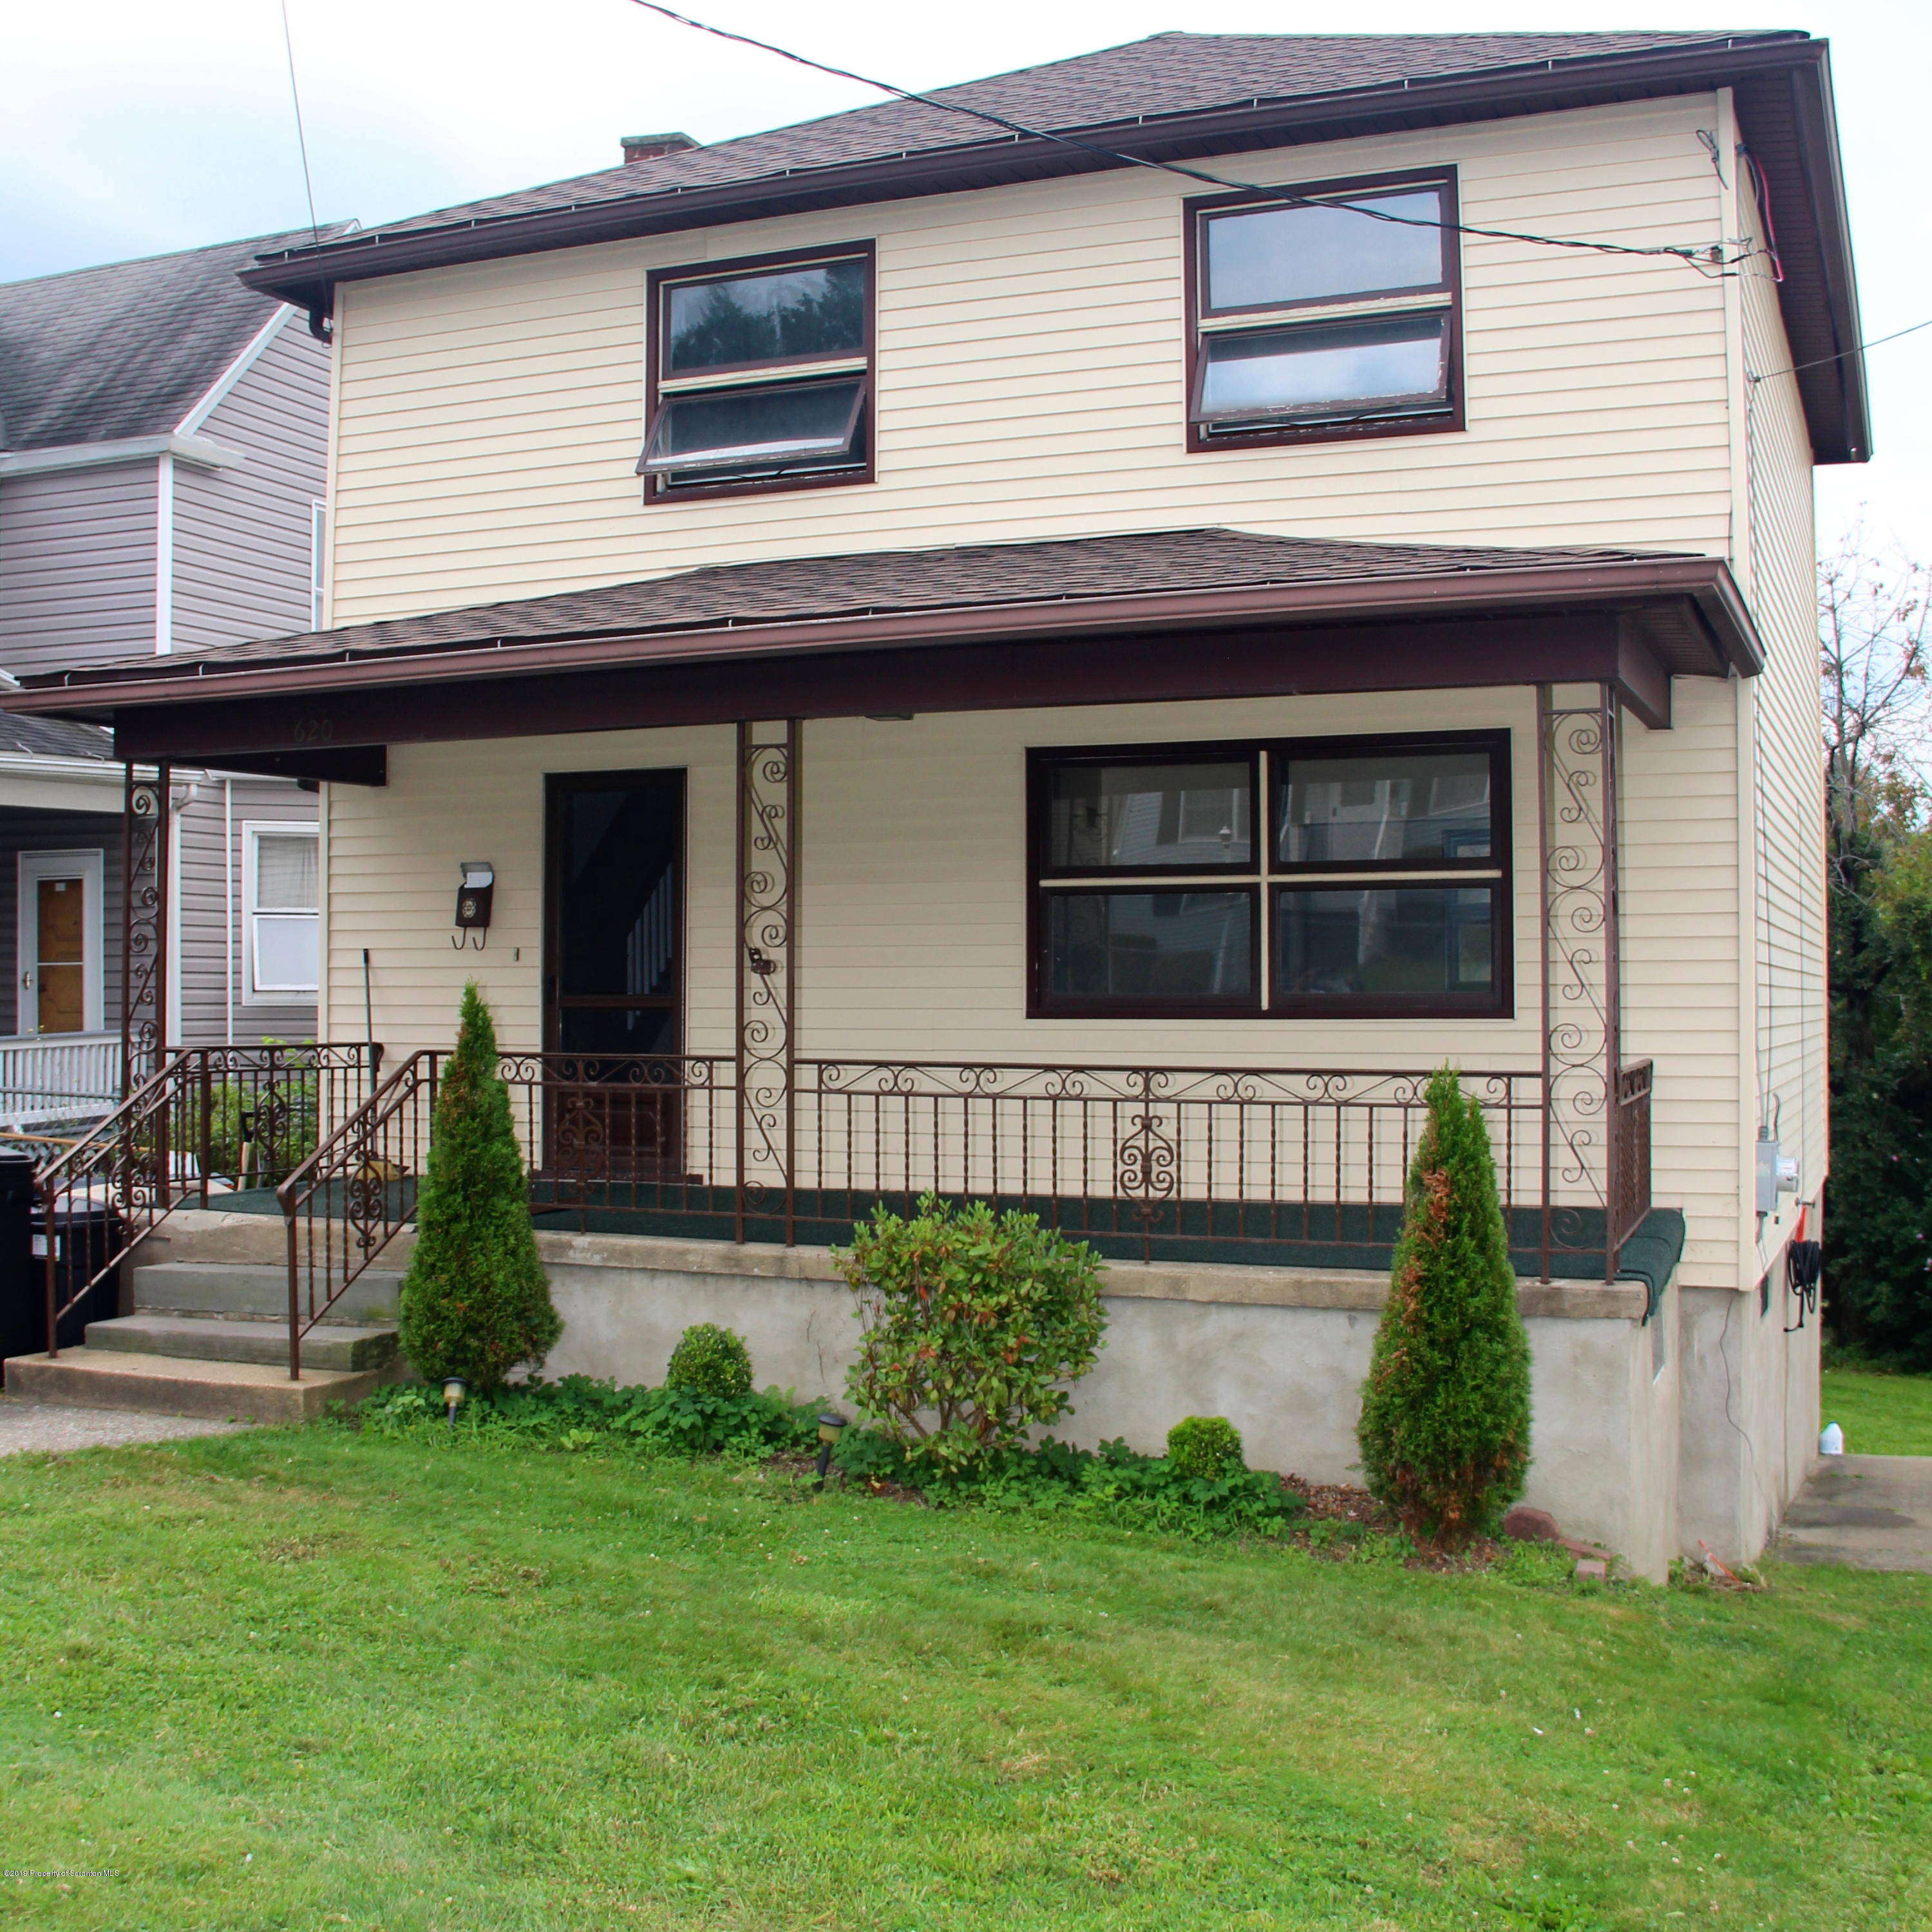 620 Pear St, Scranton, Pennsylvania 18505, 3 Bedrooms Bedrooms, 6 Rooms Rooms,2 BathroomsBathrooms,Rental,For Lease,Pear,19-4330